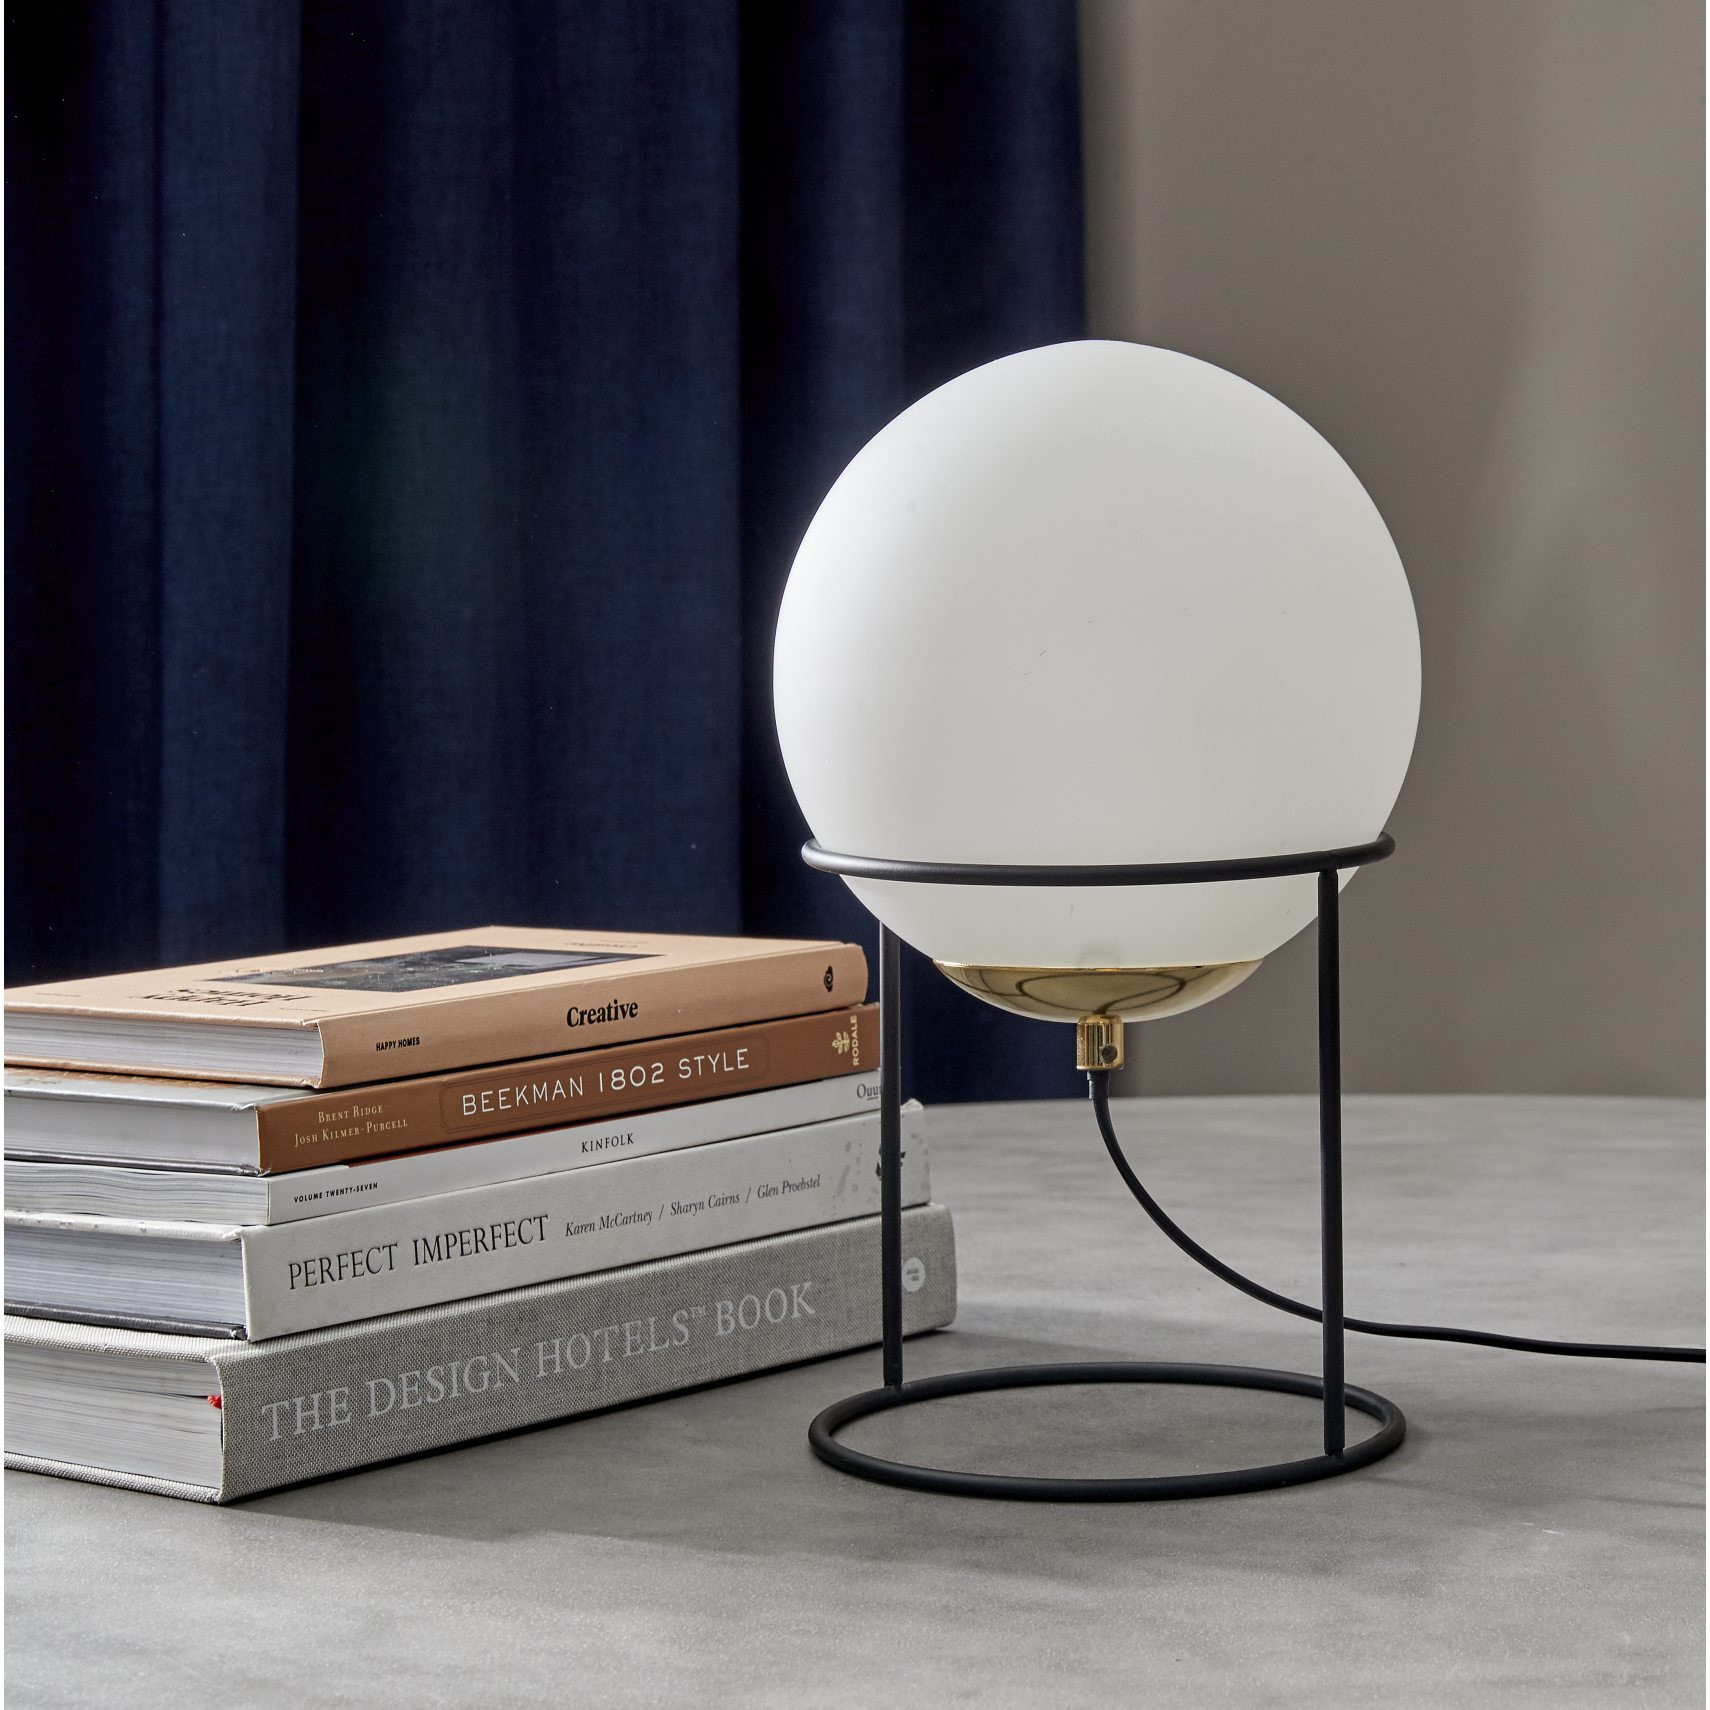 Moon Bordlampe - Sort metal stel, opal glaskugle og sort ledning